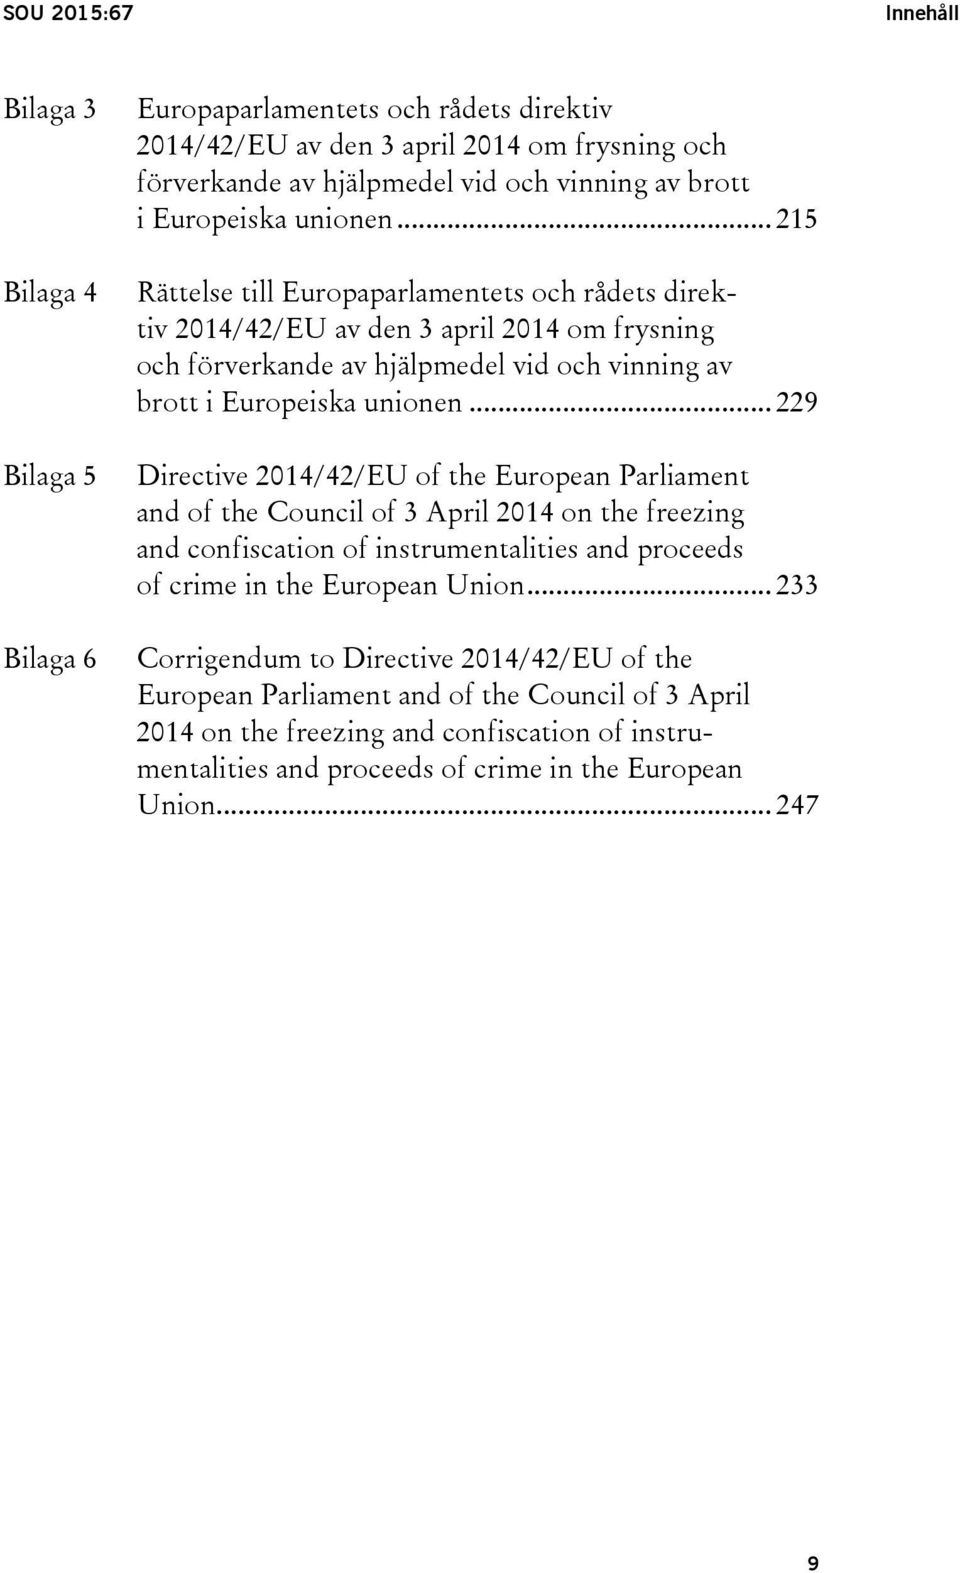 .. 229 Directive 2014/42/EU of the European Parliament and of the Council of 3 April 2014 on the freezing and confiscation of instrumentalities and proceeds of crime in the European Union.